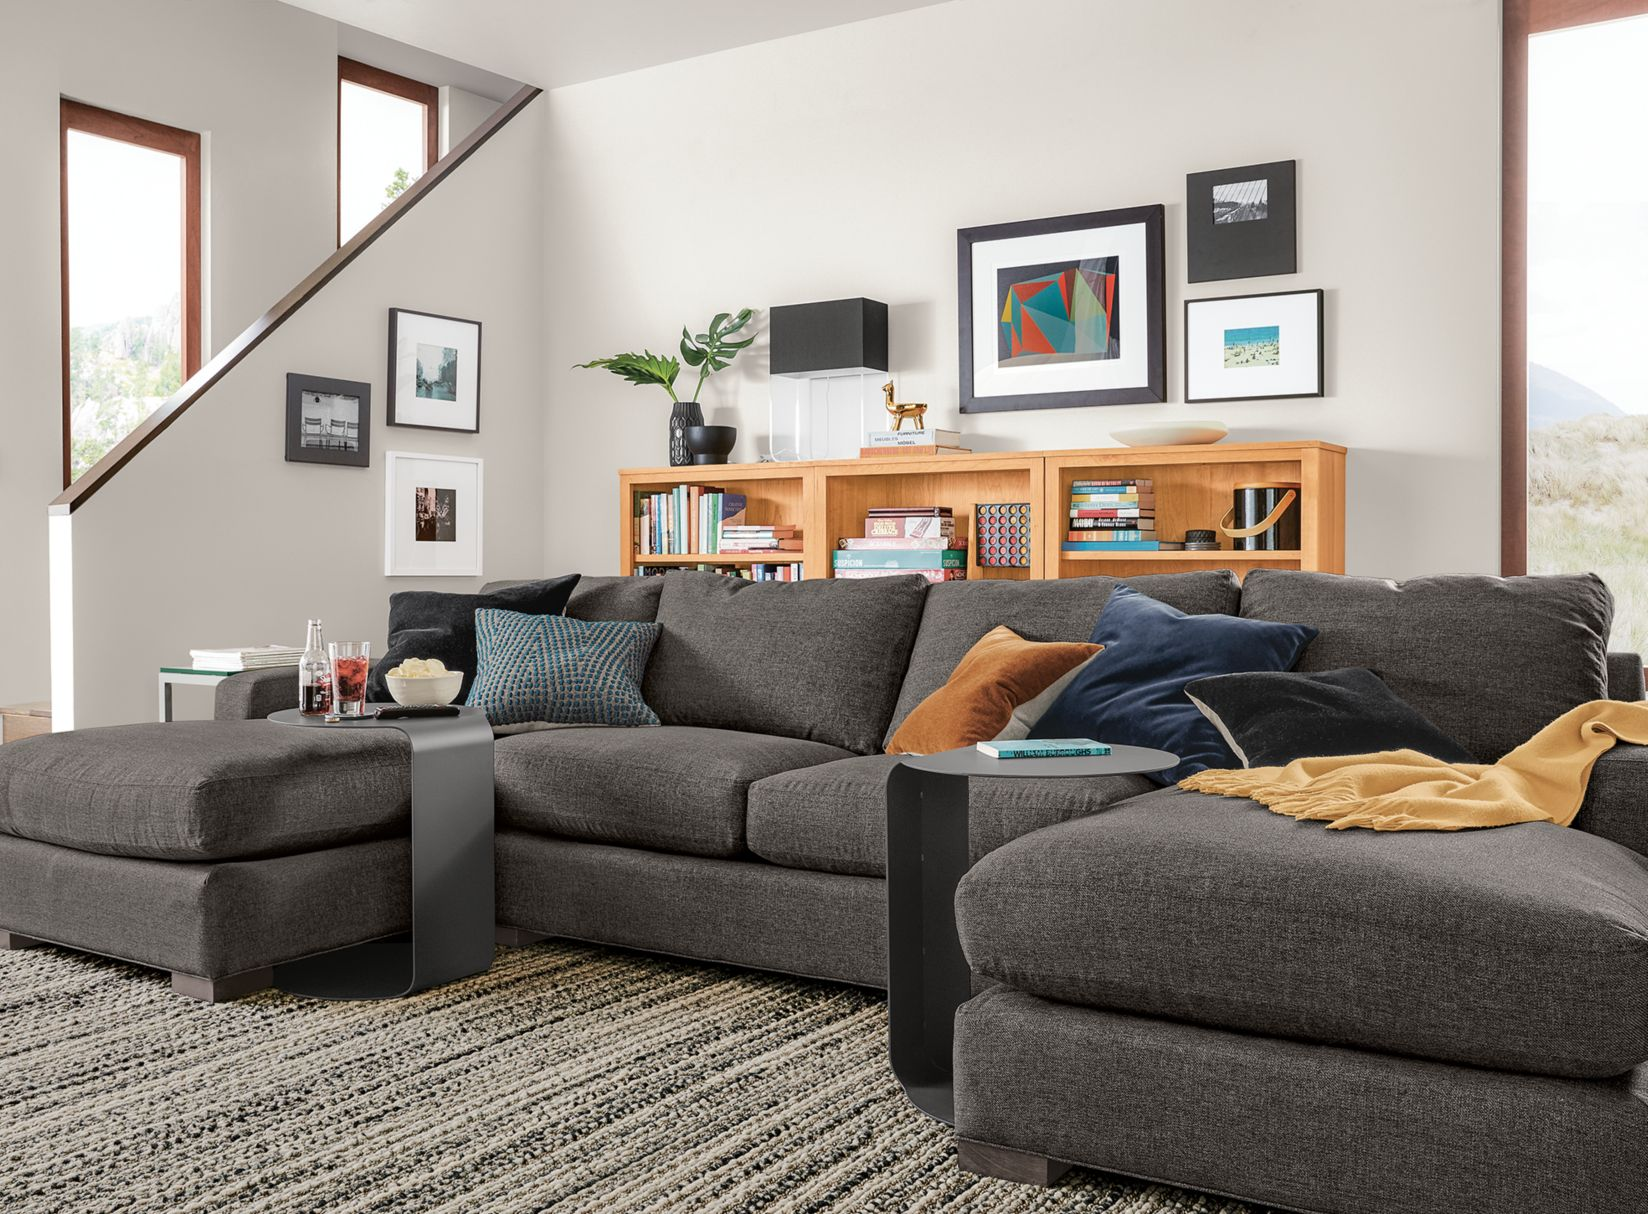 How To Choose A Sectional Ideas, Living Room Sectional